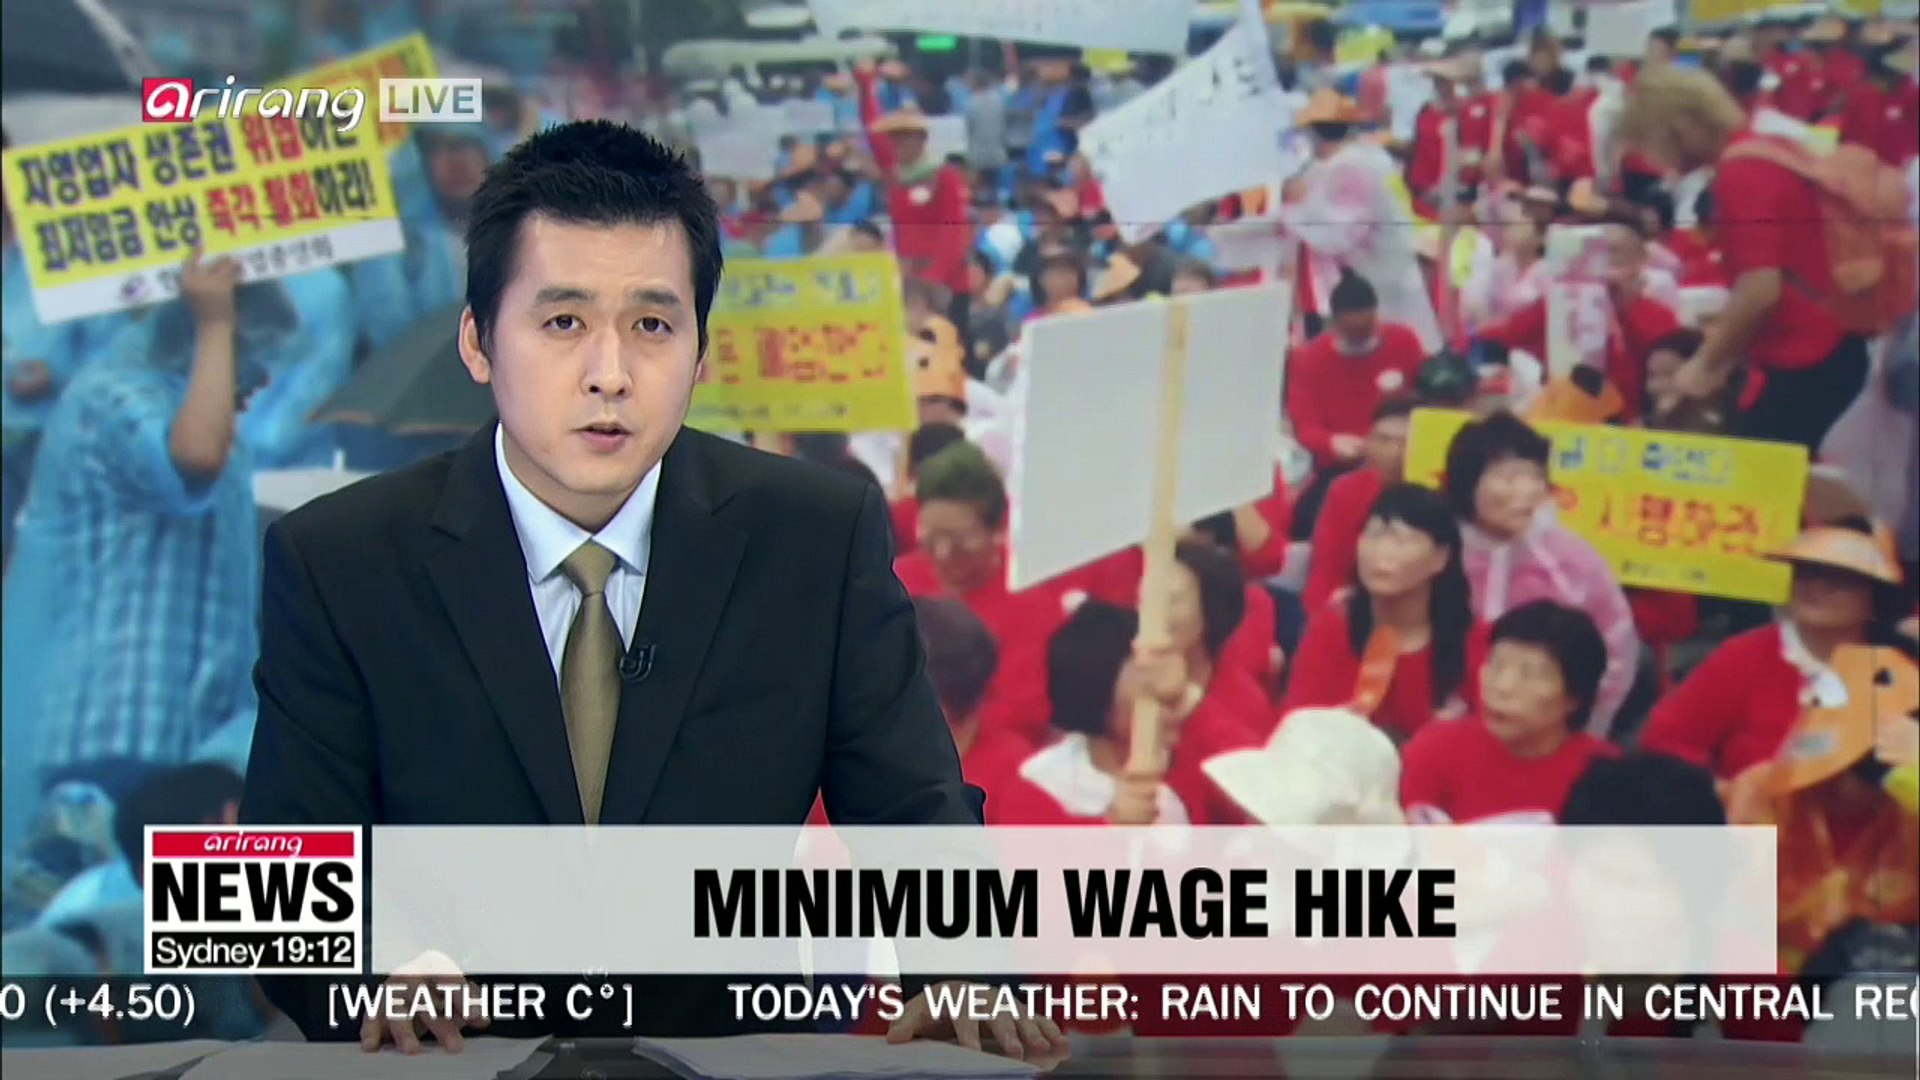 Korean small business owners protest minimum wage hike